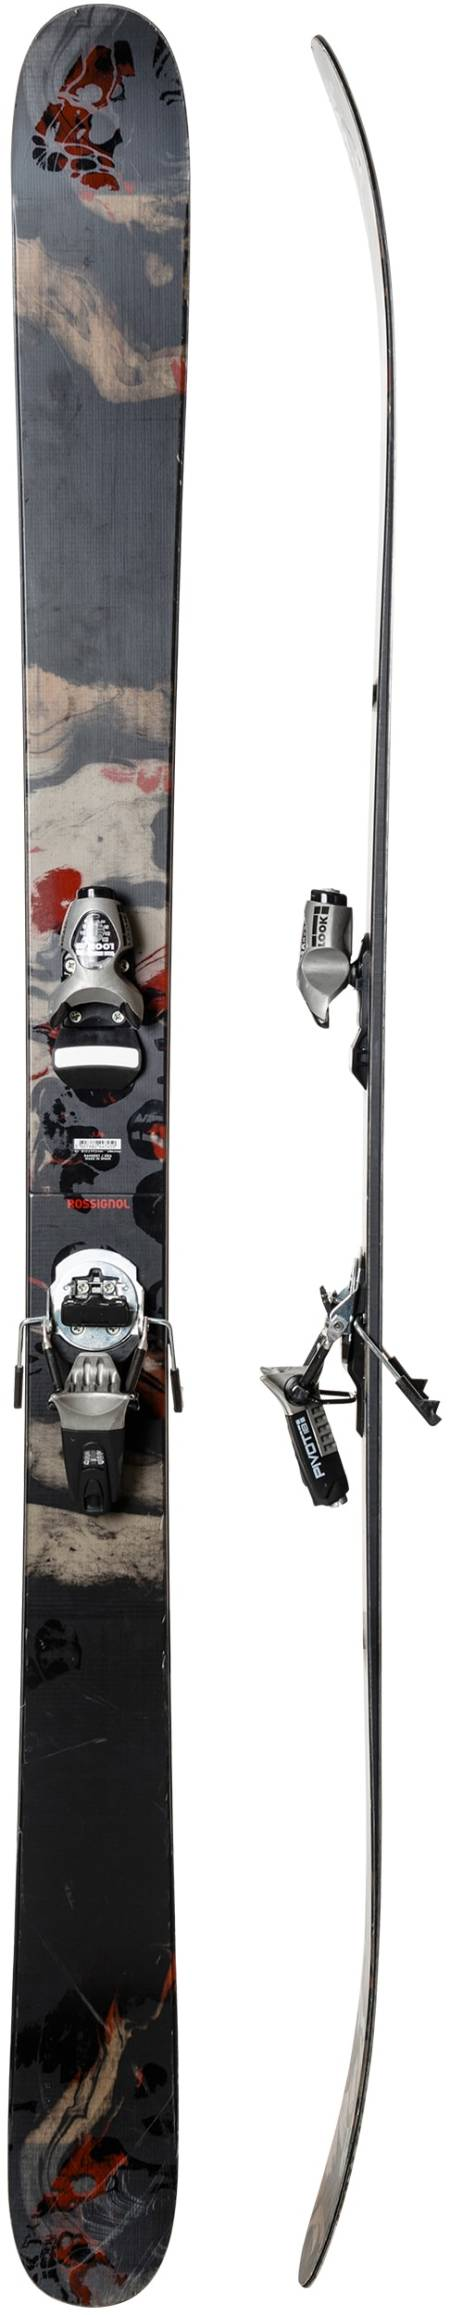 Test av Rossignol Black Ops 2020